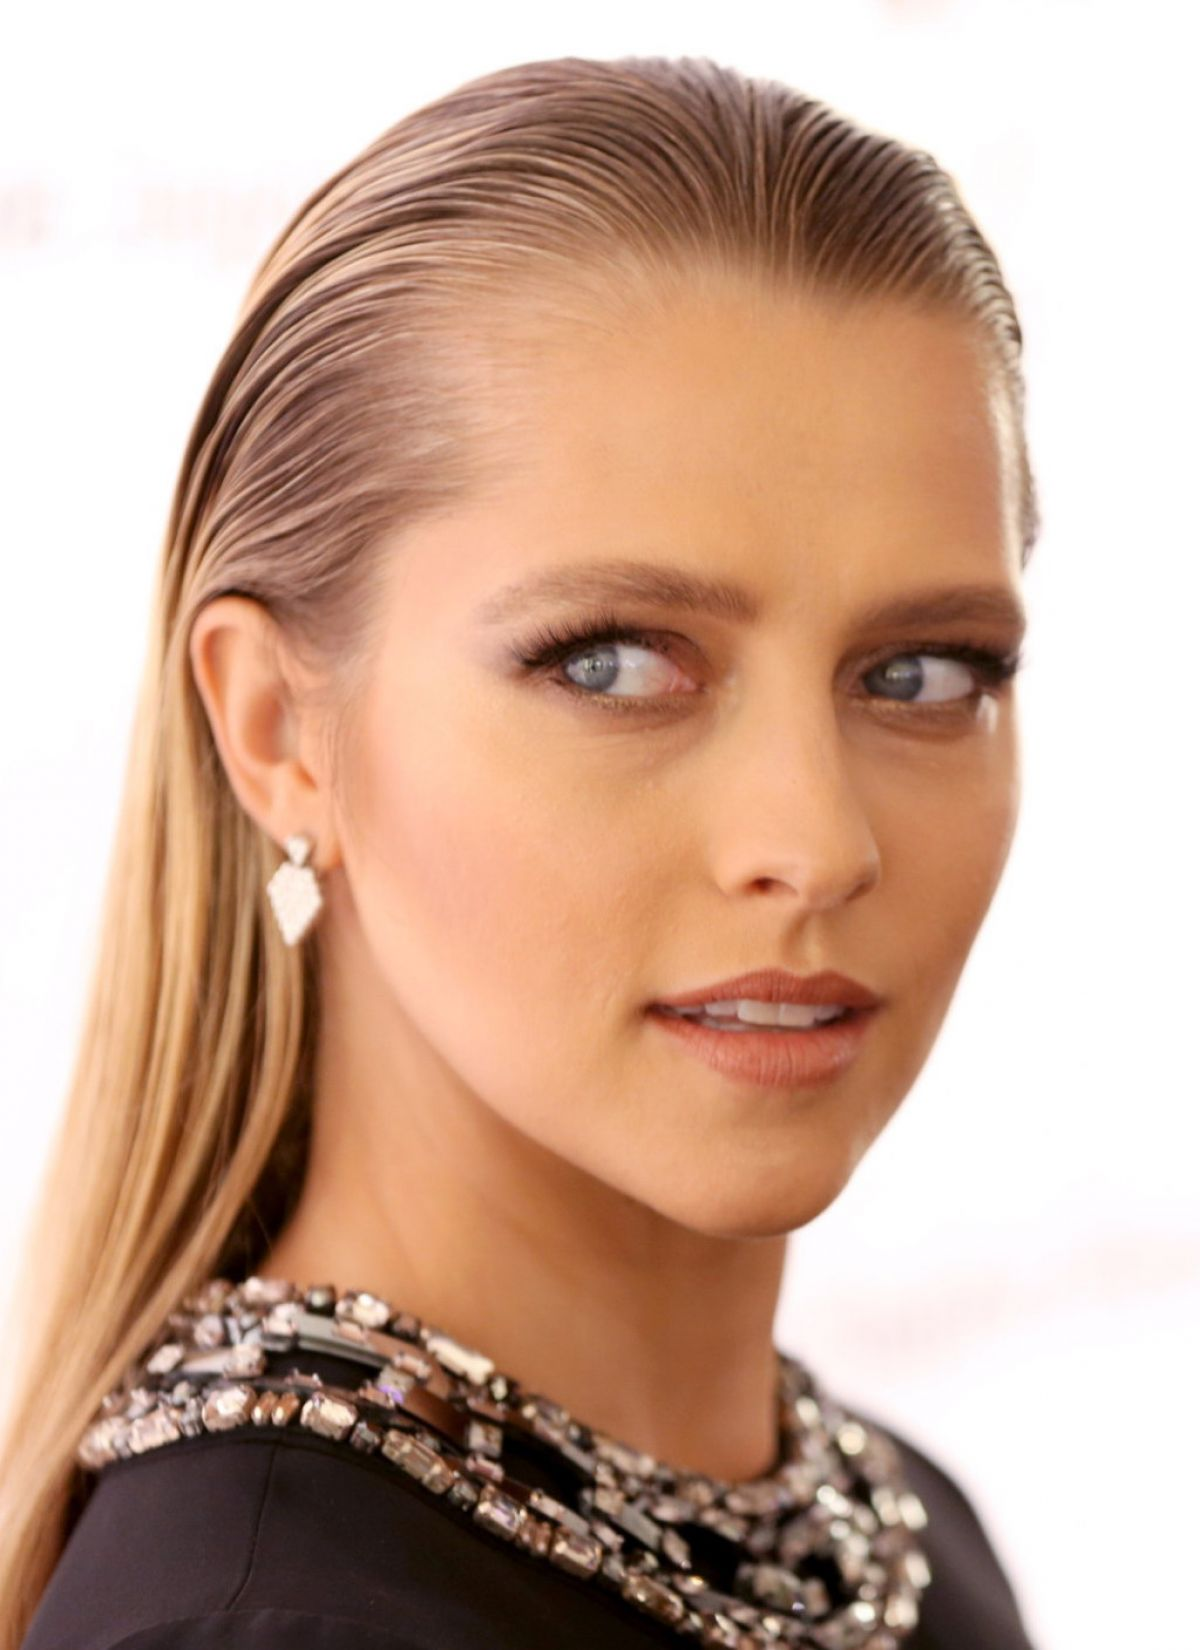 teresa palmer wikiteresa palmer gif, teresa palmer instagram, teresa palmer hacksaw ridge, teresa palmer movies, teresa palmer фильмы, teresa palmer фото, teresa palmer films, teresa palmer 2017, teresa palmer valentino, teresa palmer wikipedia, teresa palmer gif tumblr, teresa palmer and mark webber, teresa palmer wiki, teresa palmer i am number four, teresa palmer png, teresa palmer site, teresa palmer artistry 2017, teresa palmer fashion spot, teresa palmer photo hot, teresa palmer and husband